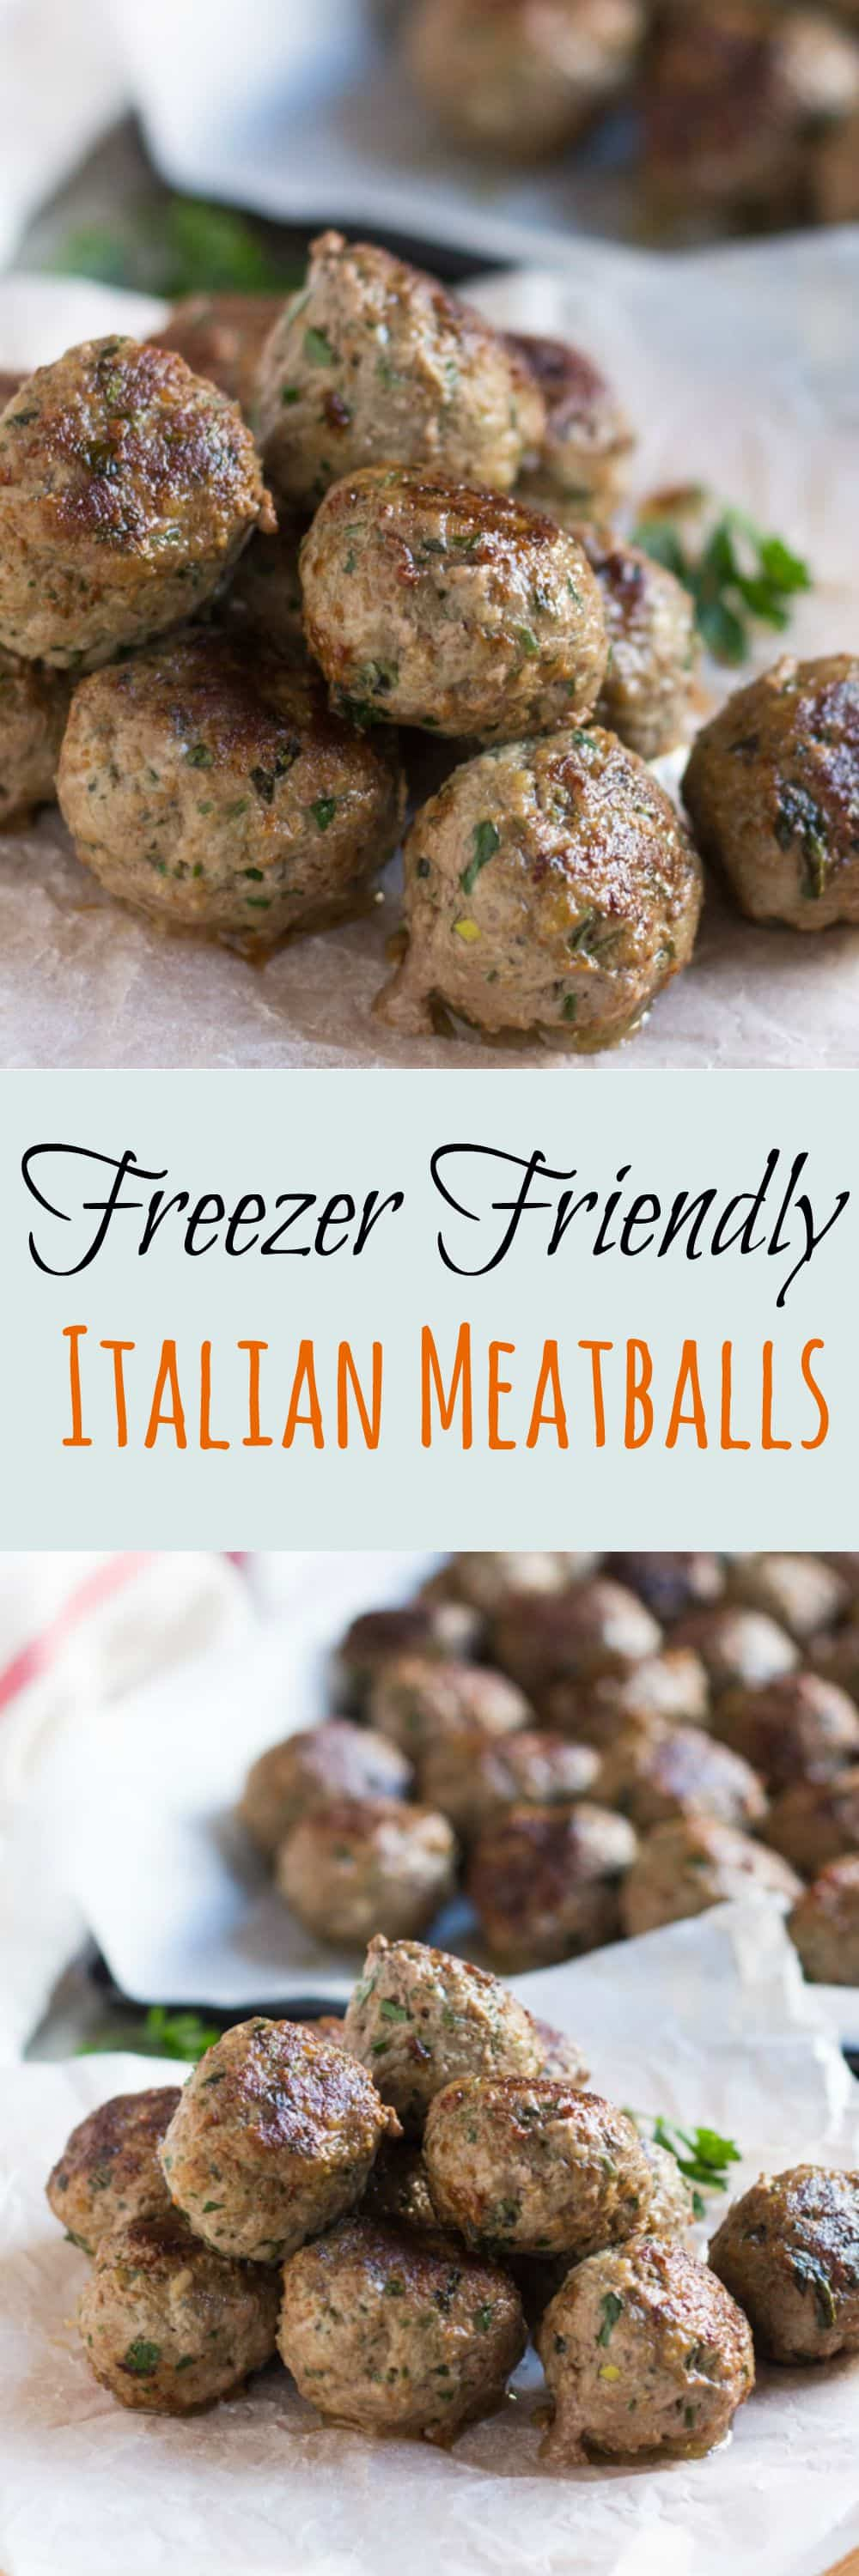 Freezer Friendly Italian Meatballs.  Handy to have in the freezer for a quick meal. Just simmer in tomato sauce whilst the pasta is cooking.